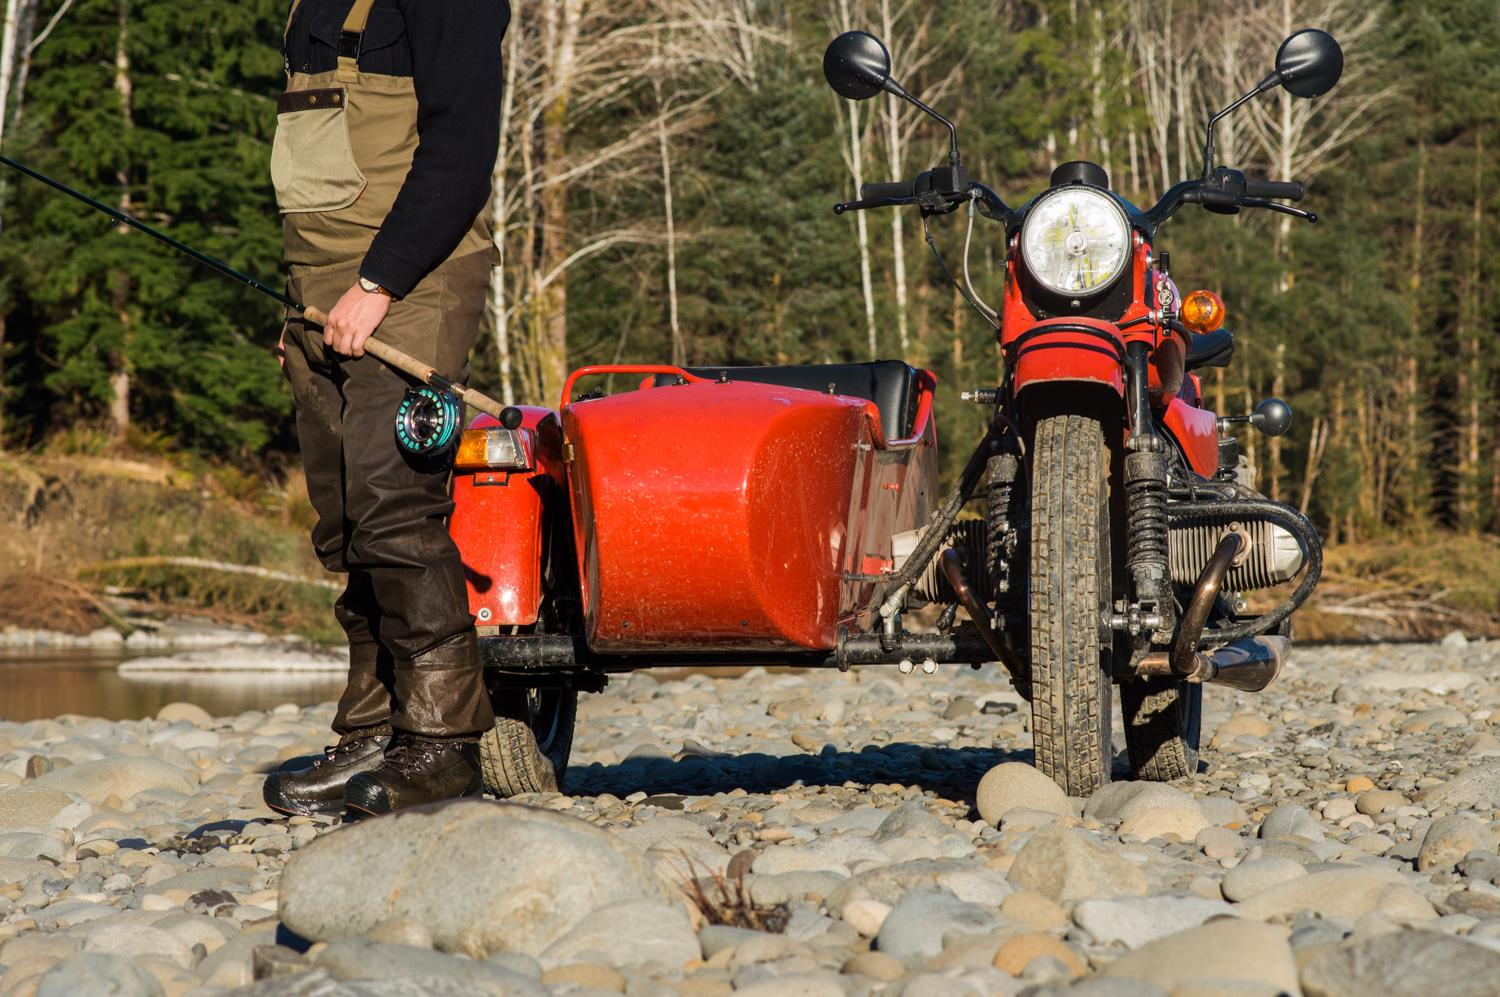 16Gear_Ural_0102-LR-Copy